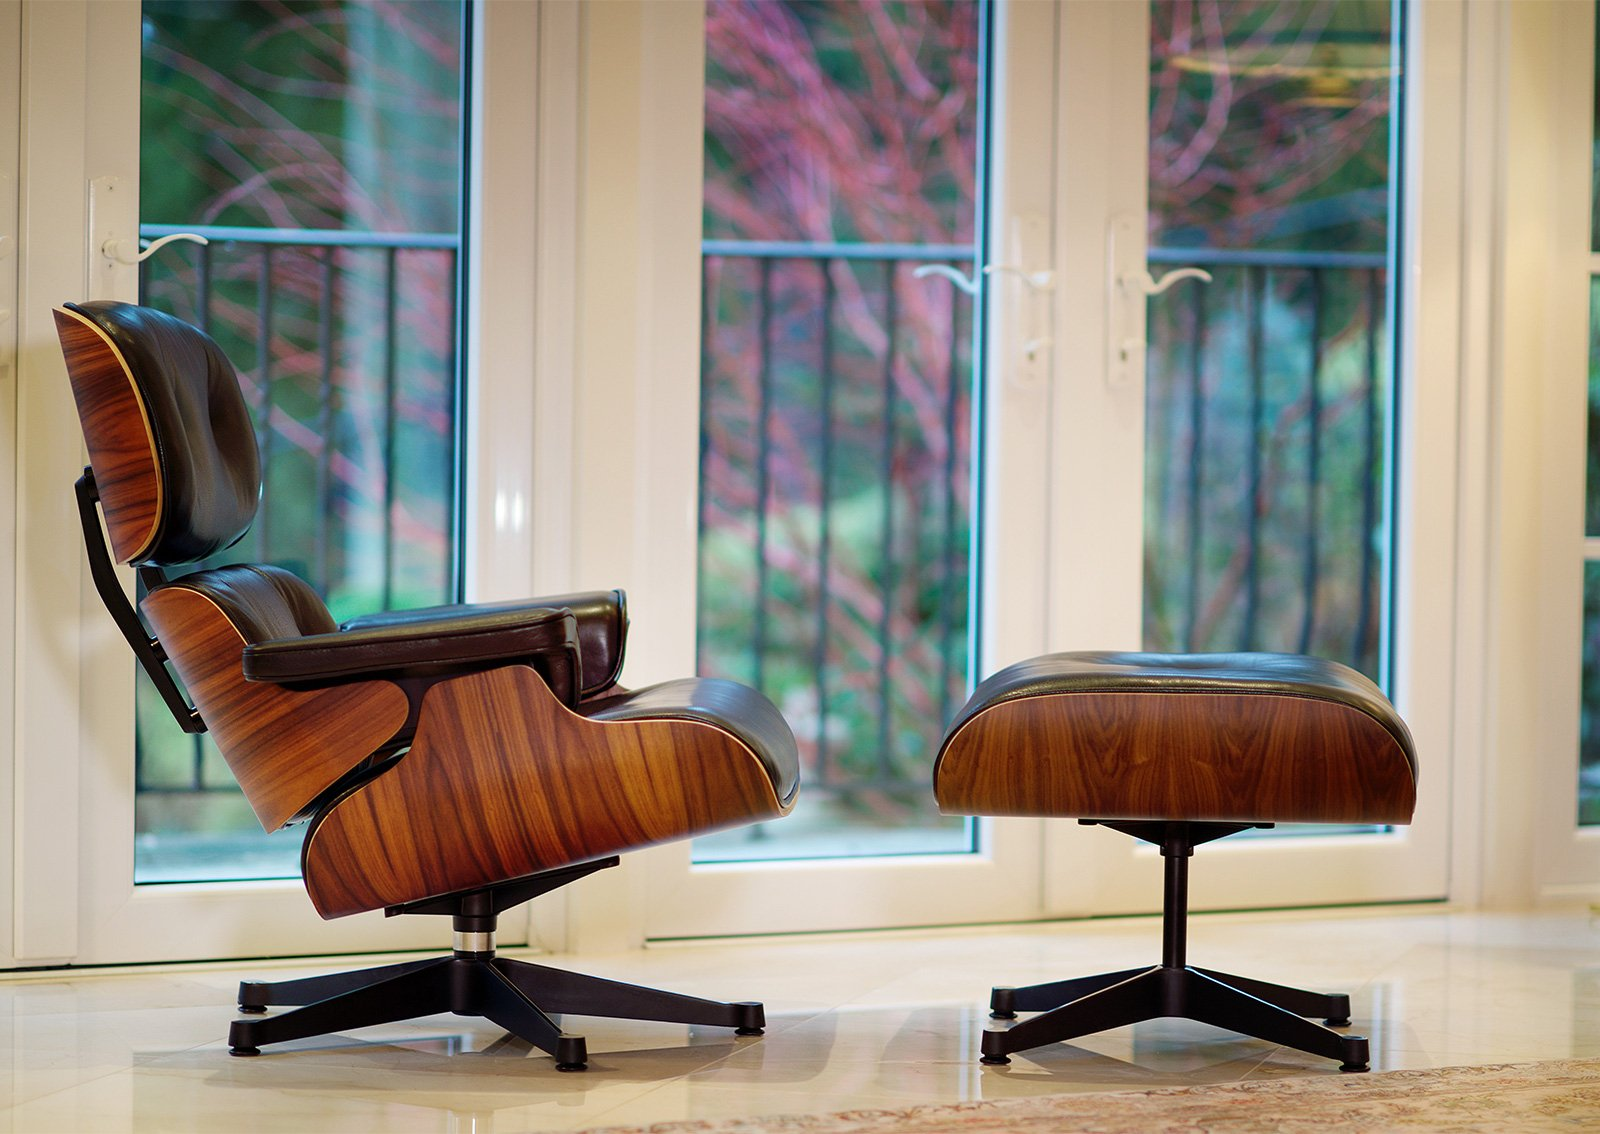 Eames chairs eames lounge chair with ottoman furnishplus for Lounge chair replica erfahrungen